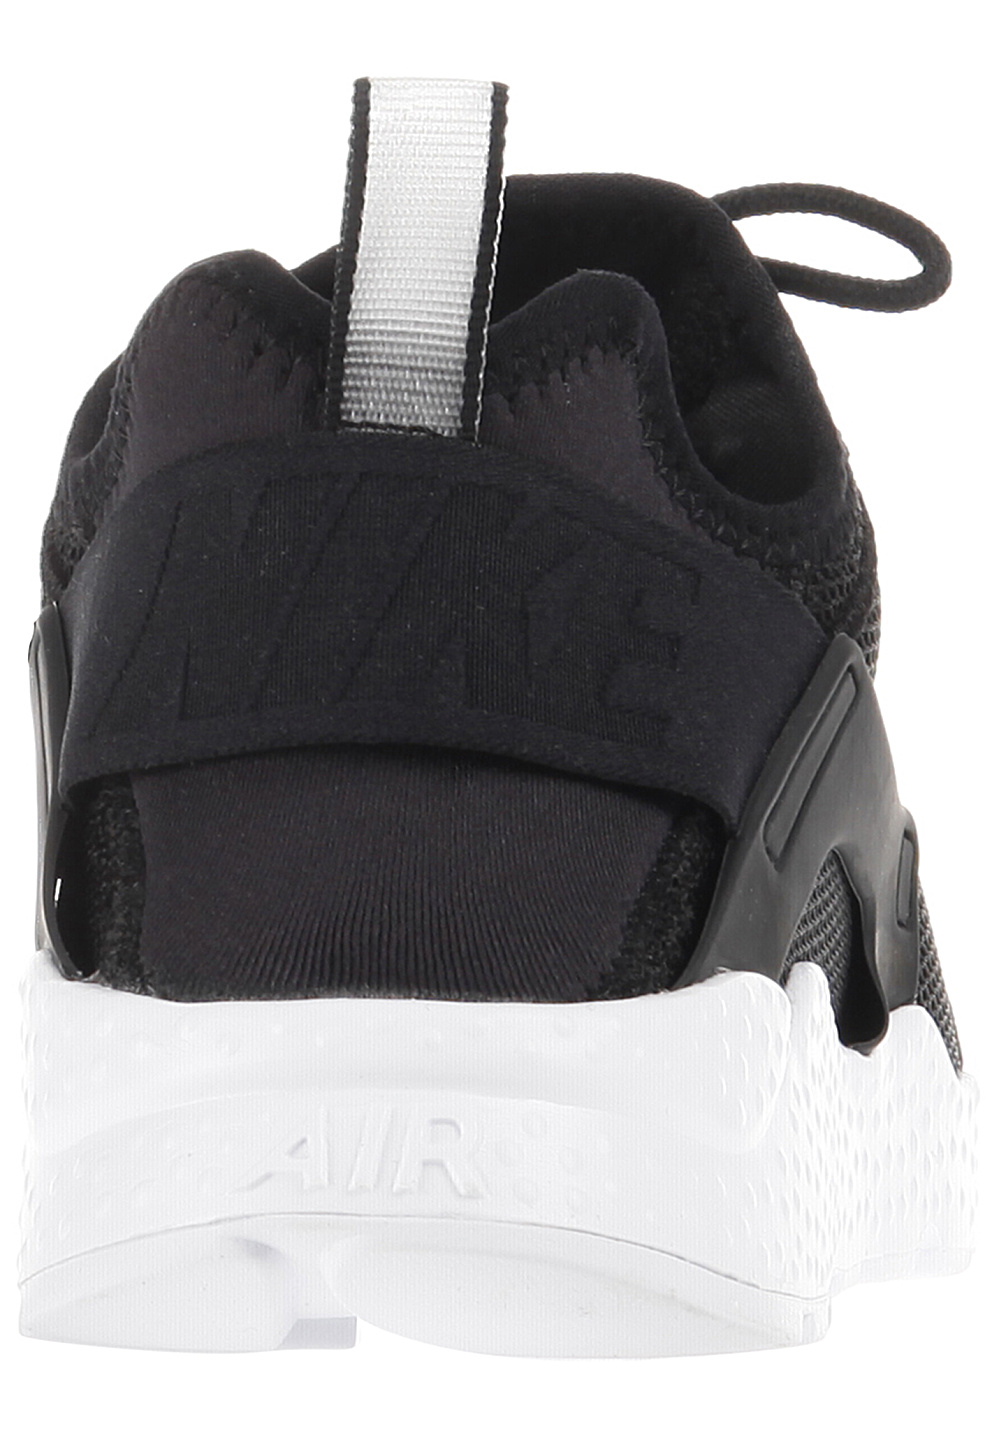 8a477263bd6 Next. -20%. NIKE SPORTSWEAR. Air Huarache Run Ultra BR - Sneakers ...